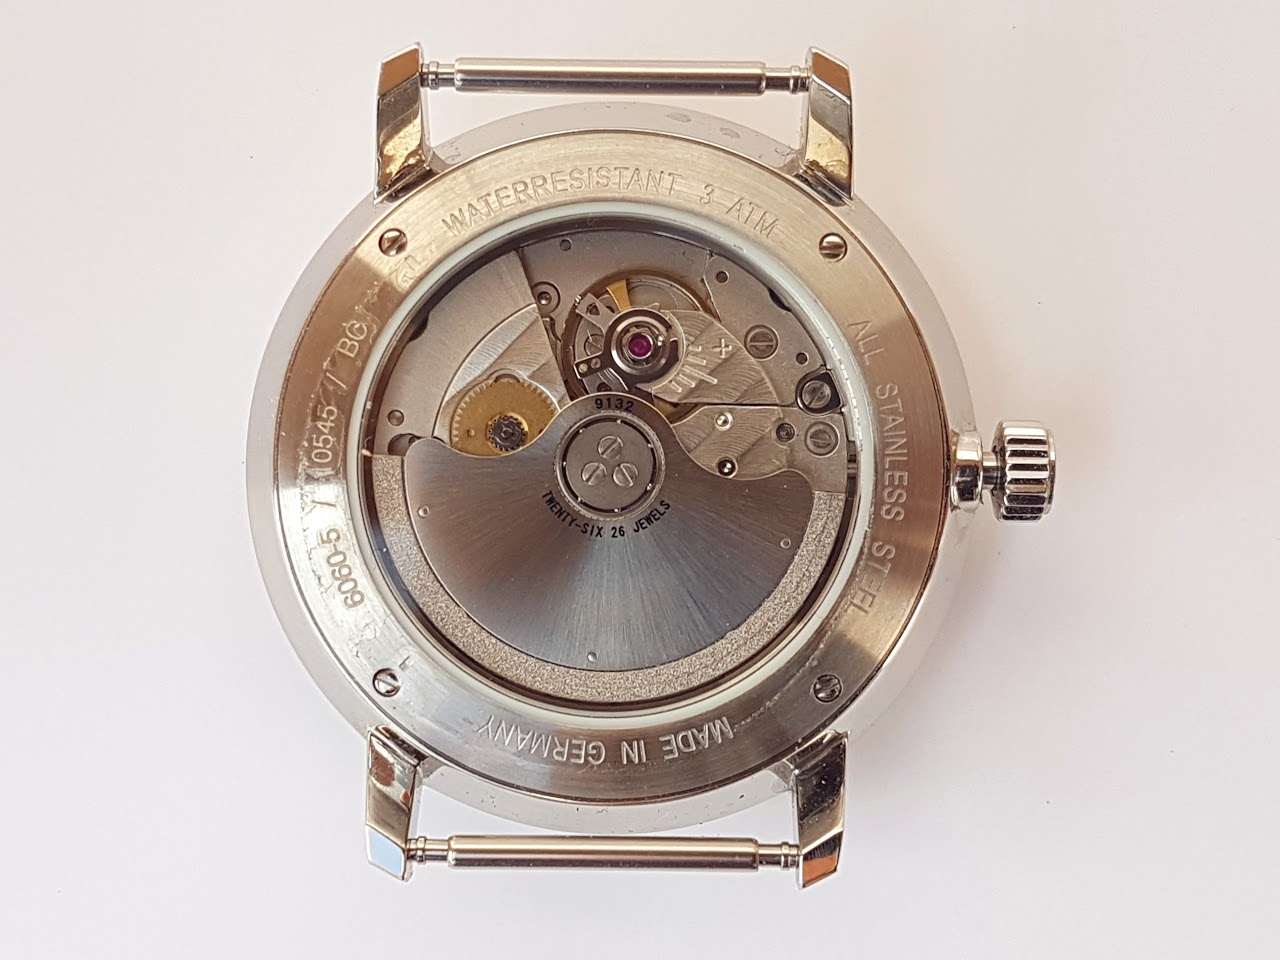 Junkers Bauhaus Miyota movement